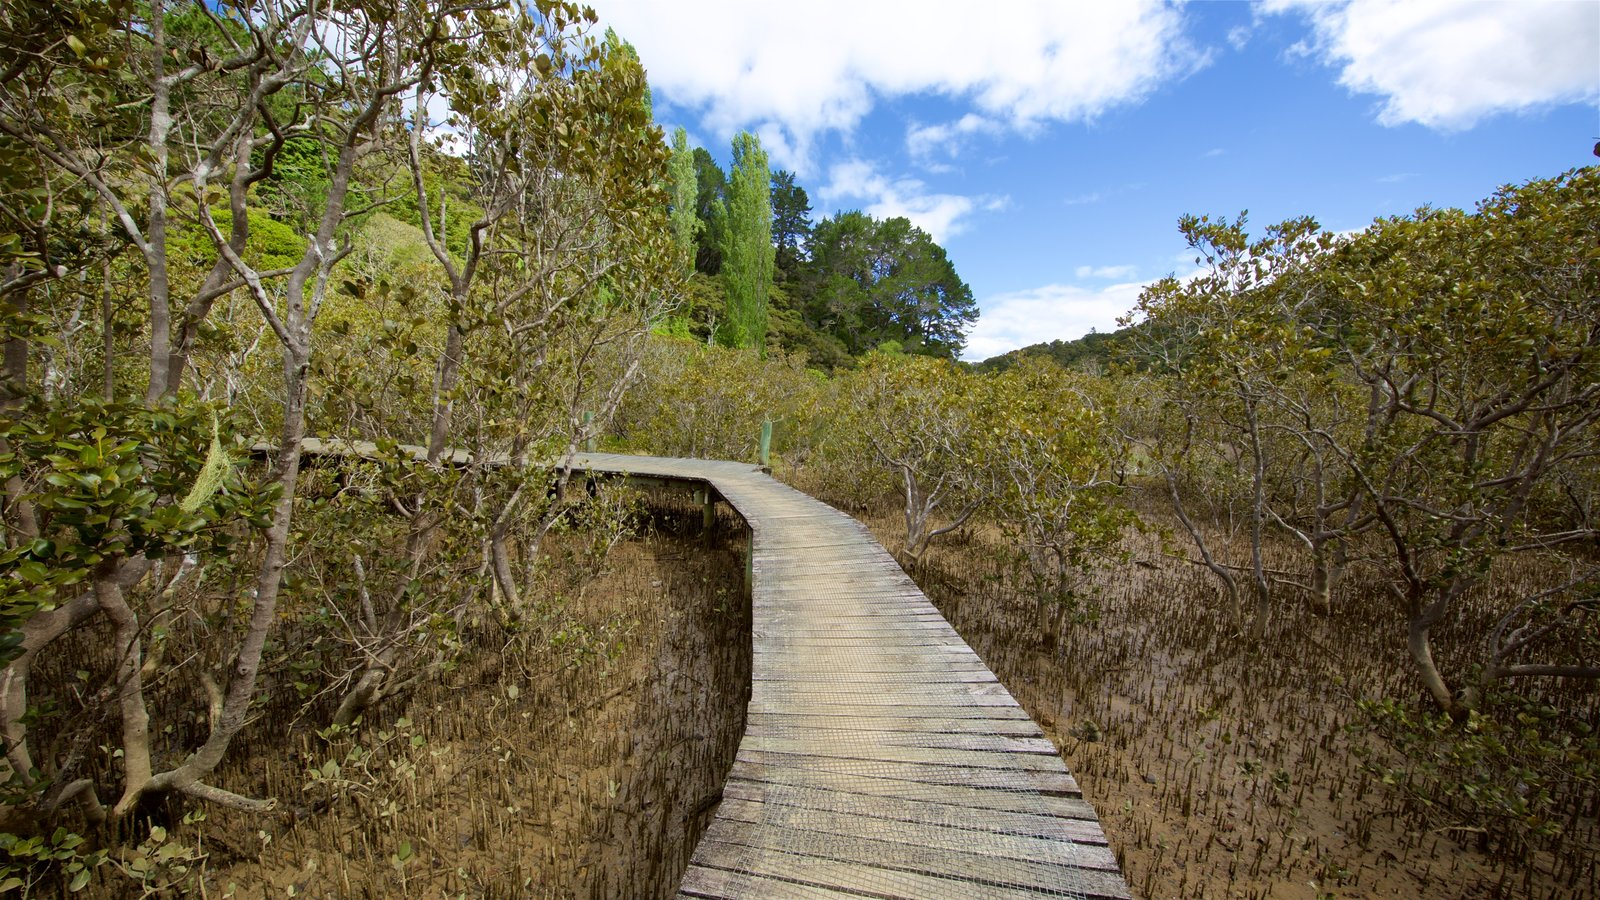 Paihia which includes mangroves